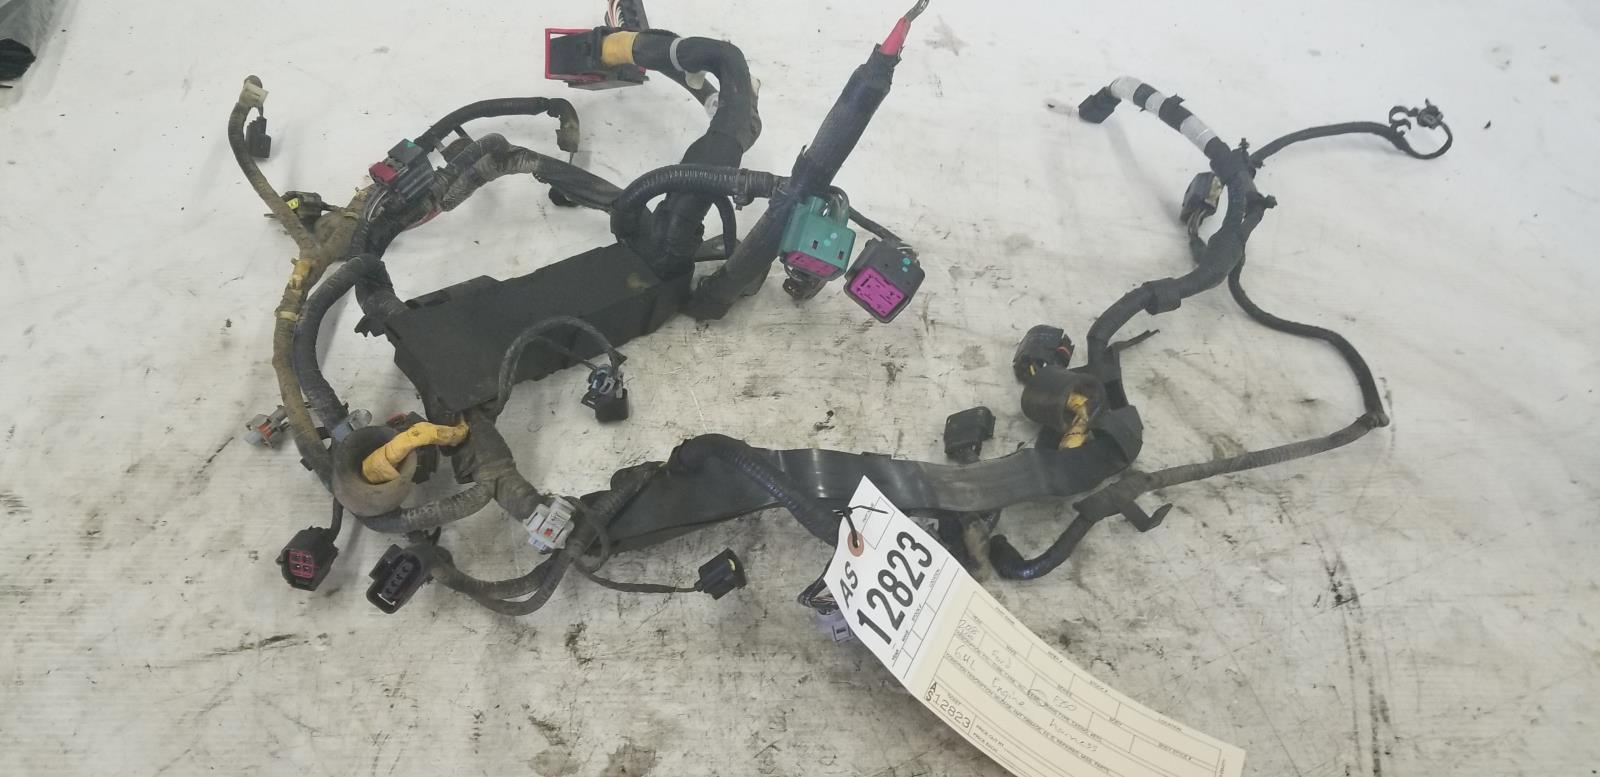 2008 2010 ford f350 6 4l powerstroke engine wiring harness partparting out lots of 1999 2010 ford f350\u0027s feel free to send me a message regarding this listing or any other parts inquiries